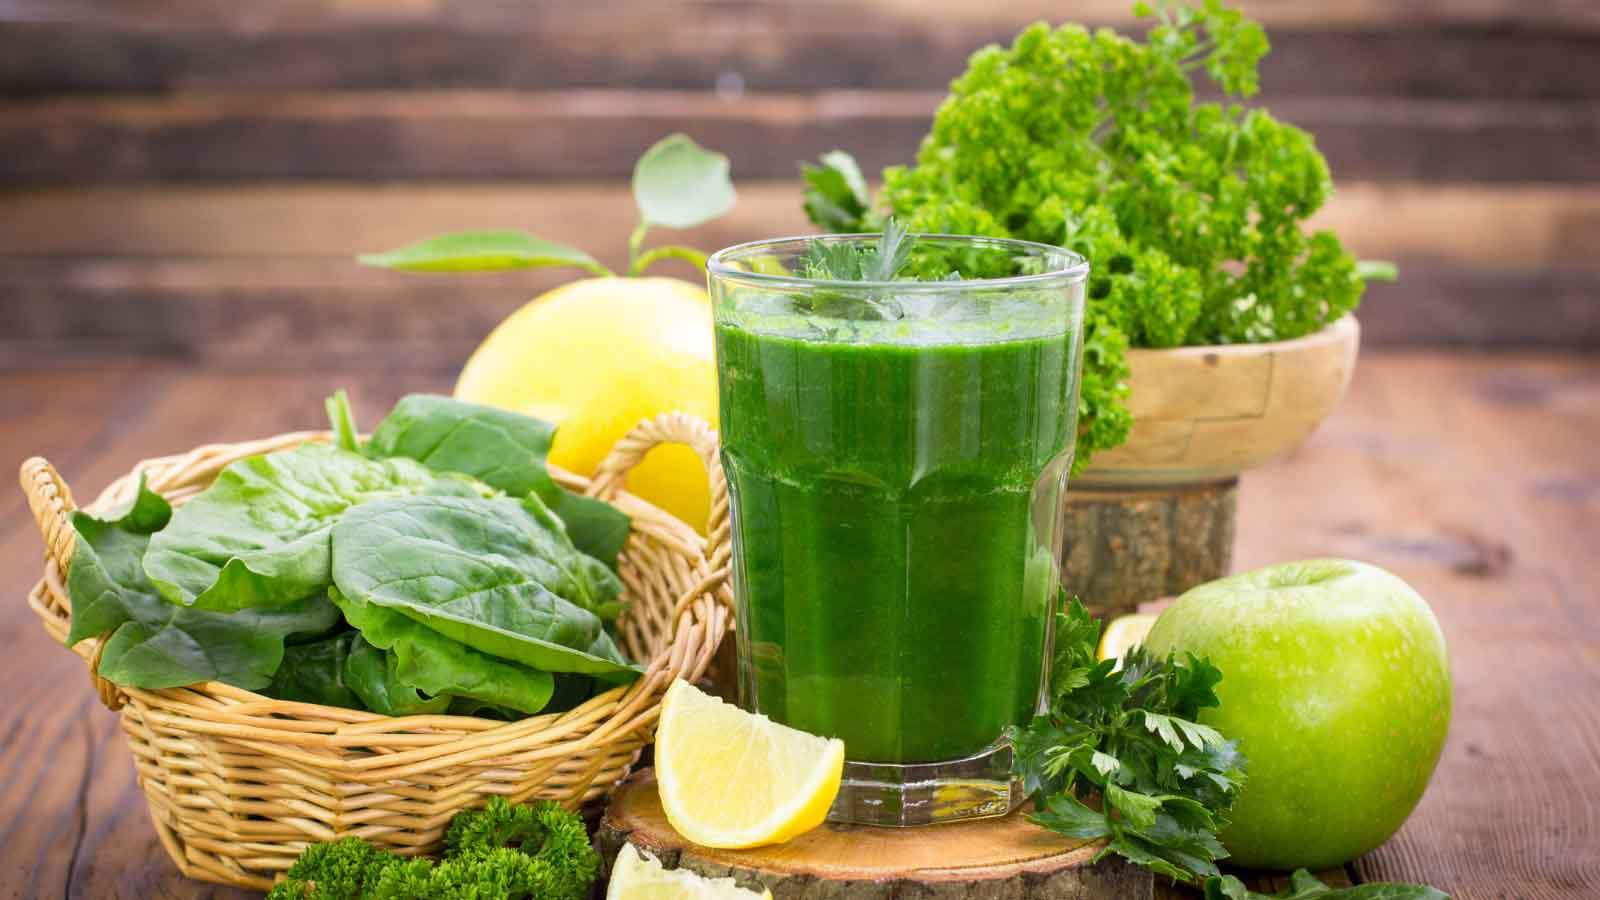 Juicing as a detox option ahead of Spring